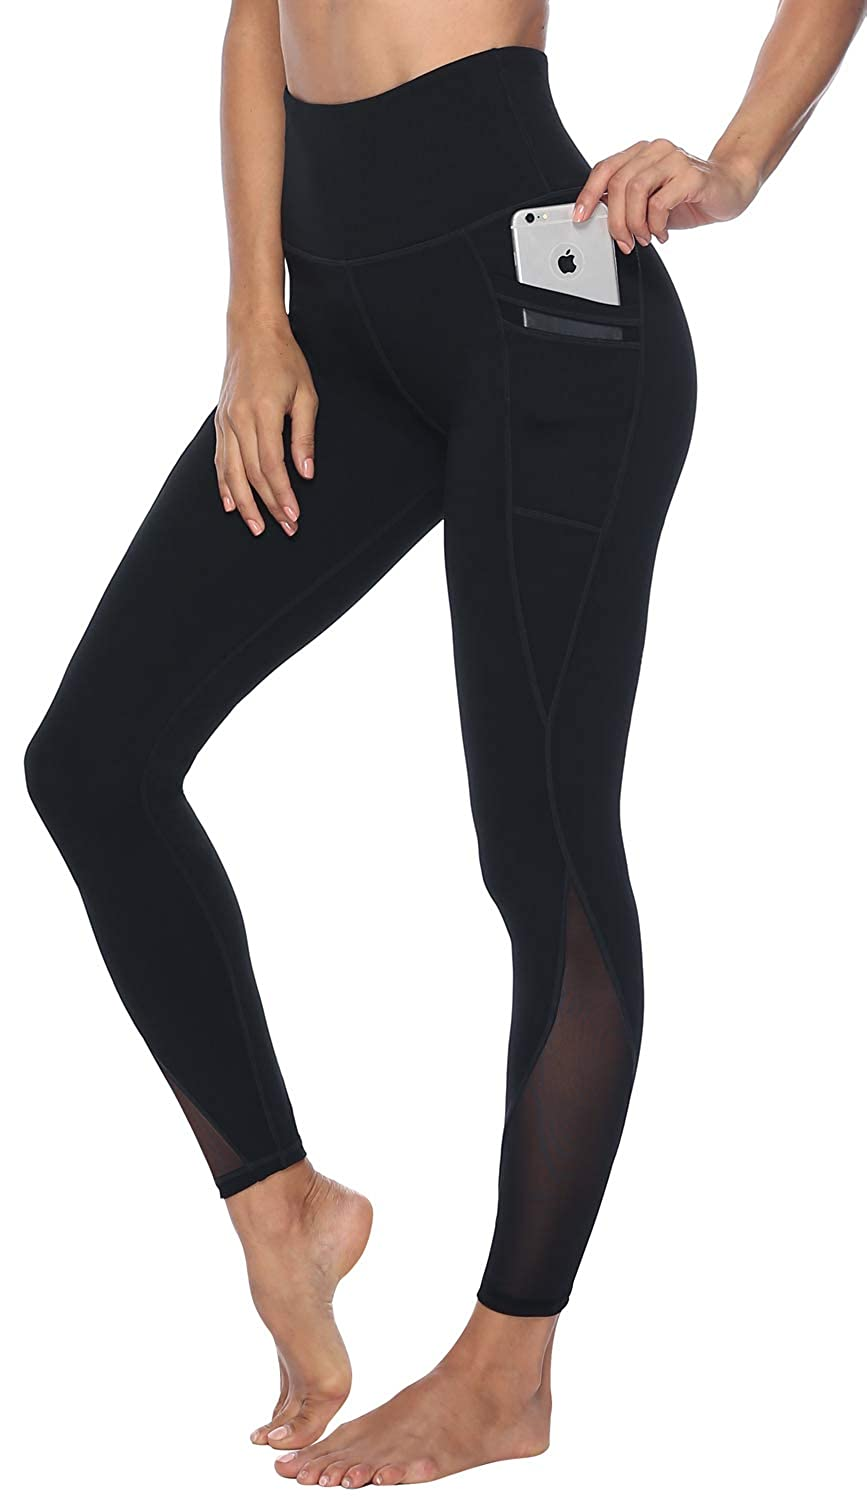 a91f43d928933 Amazon.com: Persit Women's Mesh Yoga Pants with 2 Pockets, Non See-Through  High Waist Tummy Control 4 Way Stretch Leggings: Clothing